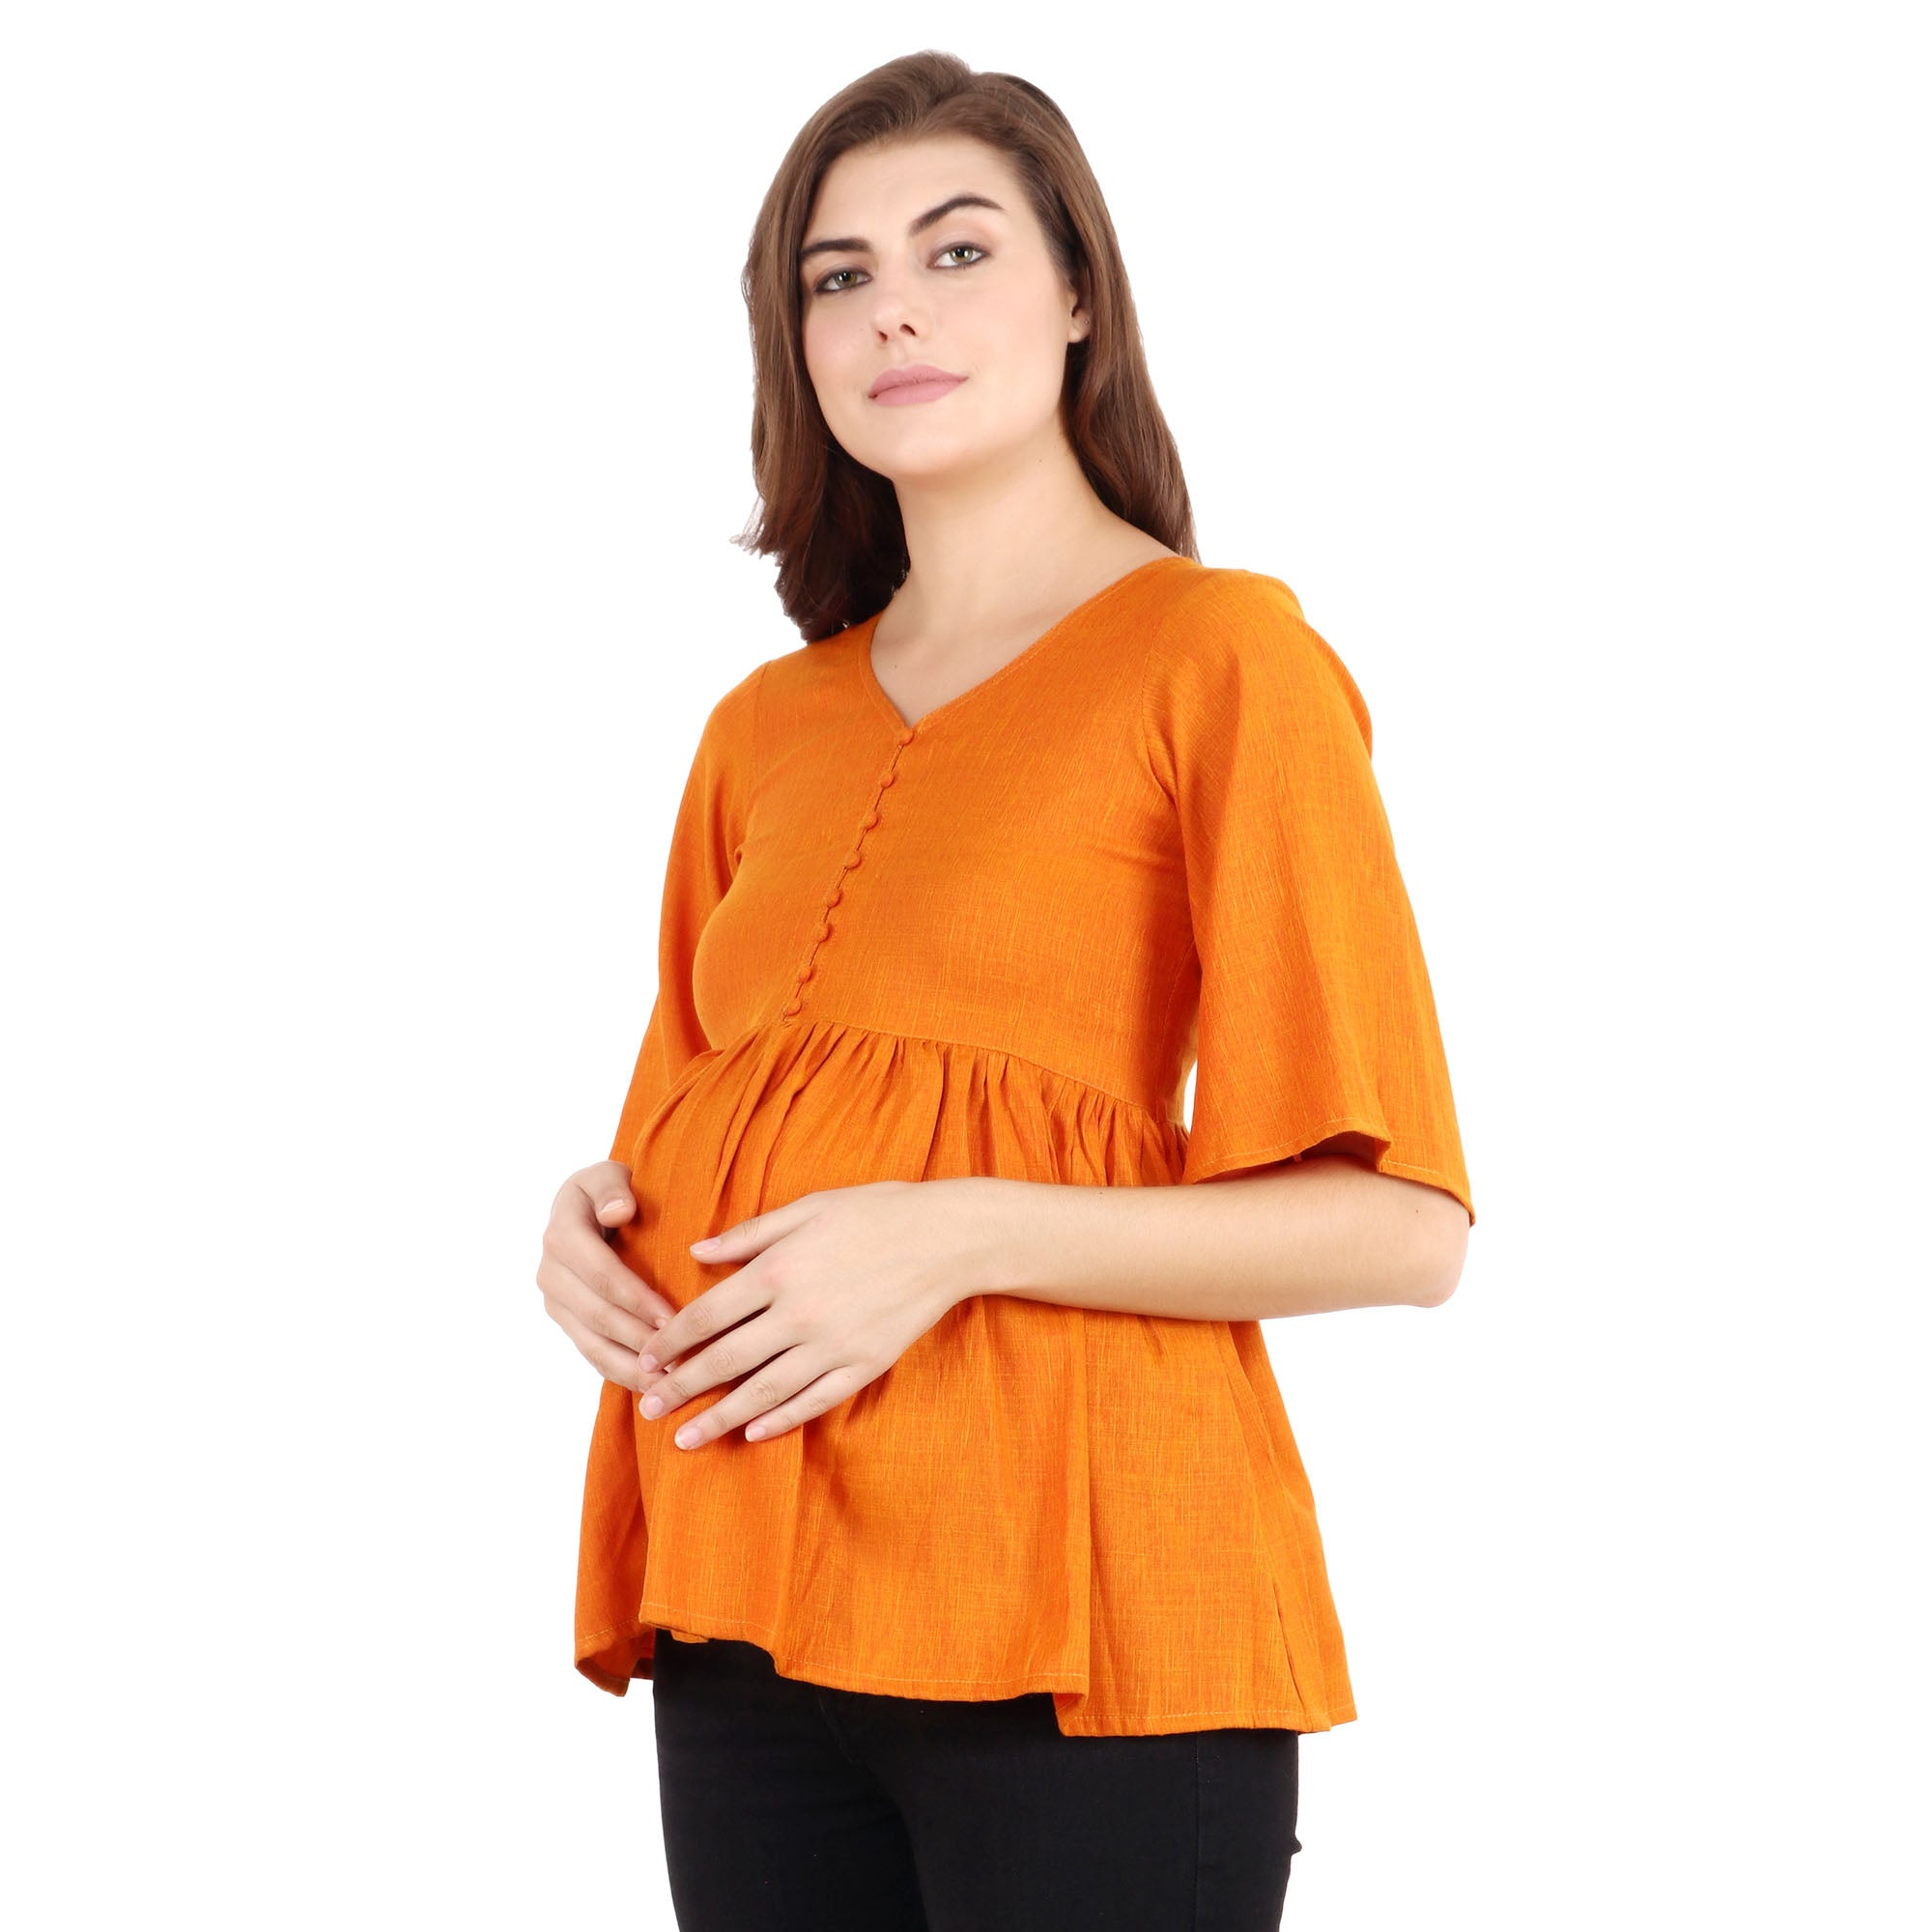 Ruche Ruffled Rayon Top - Apella